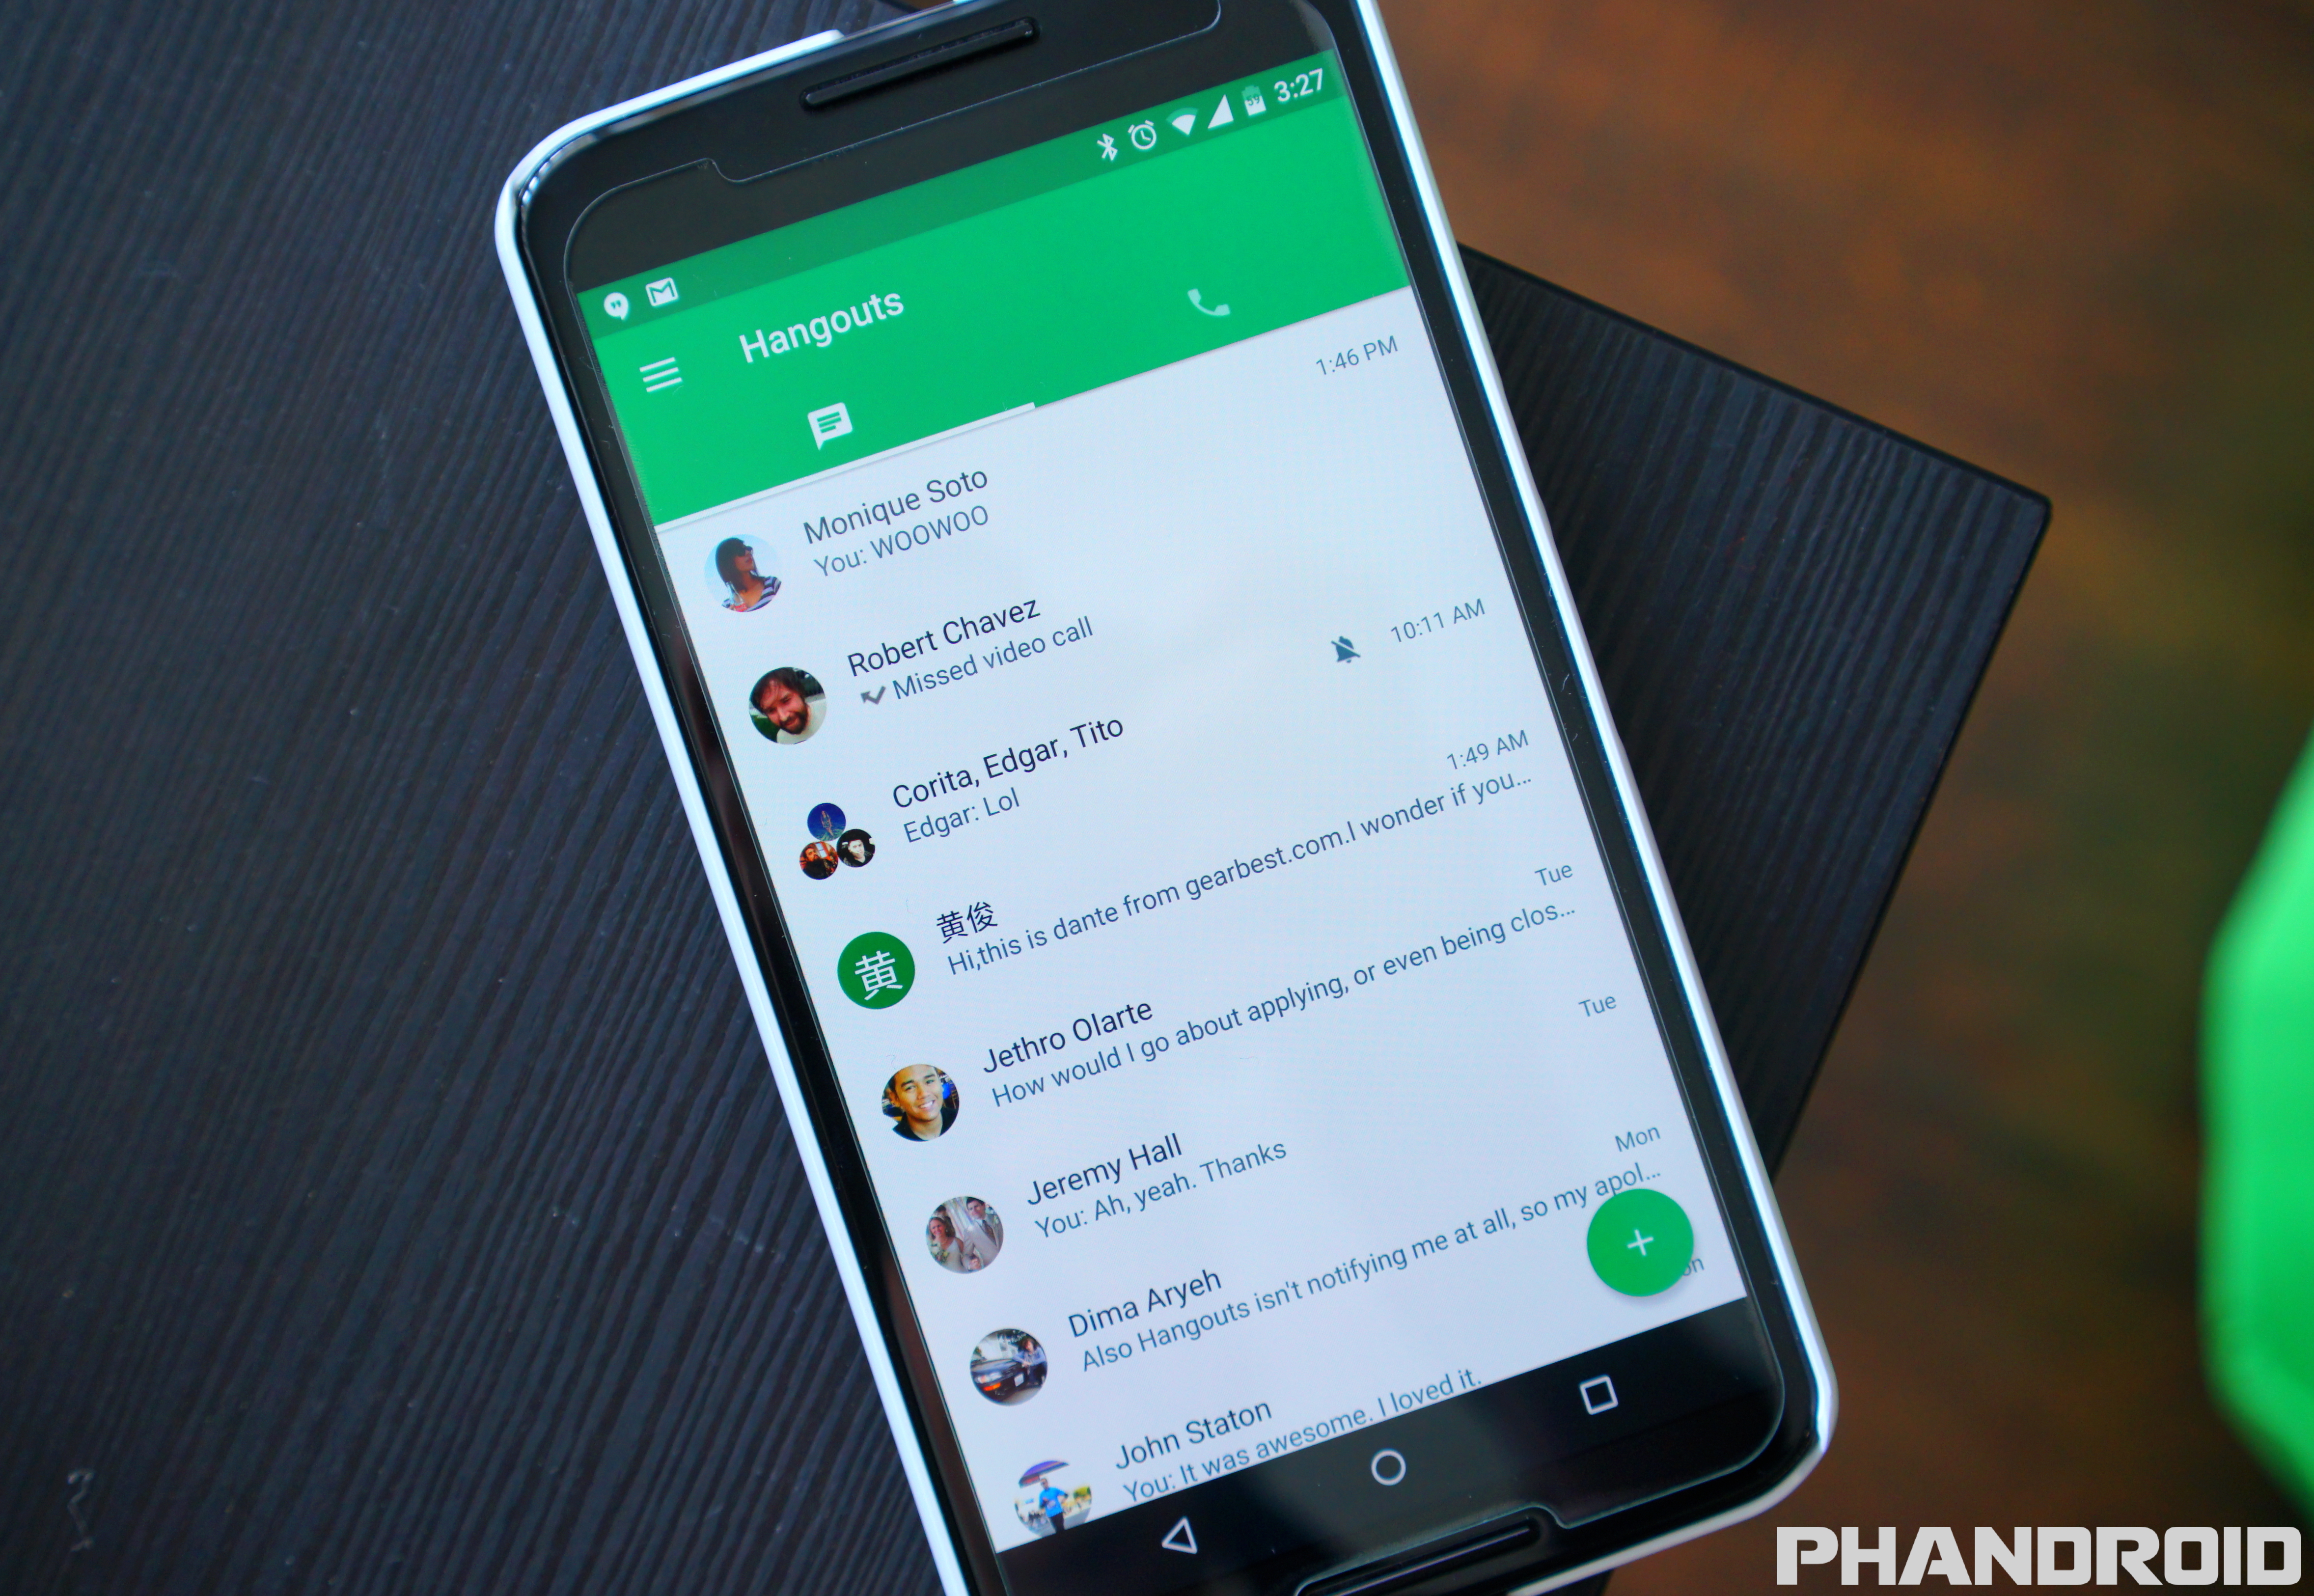 Download: Hangouts 5 0 for Android is now available